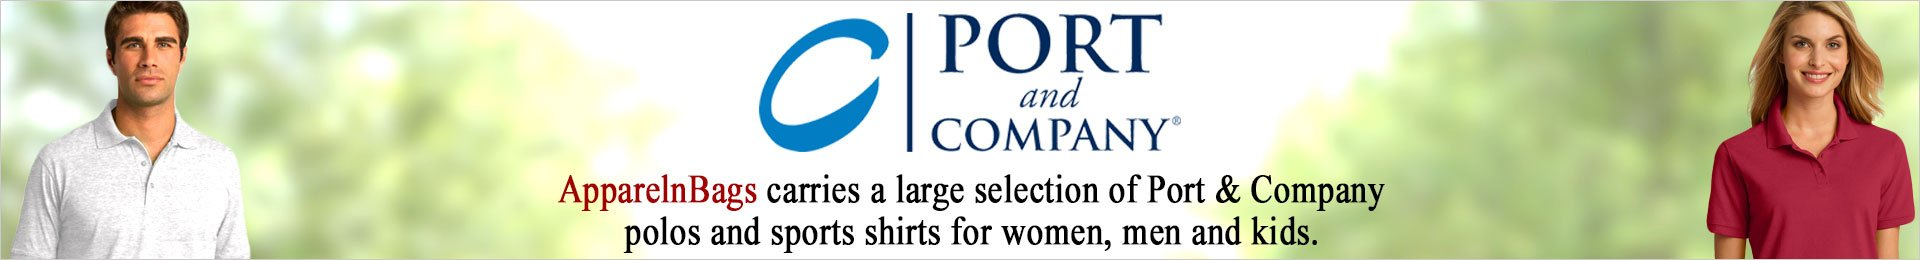 Port And Company Polo And Sports Shirts